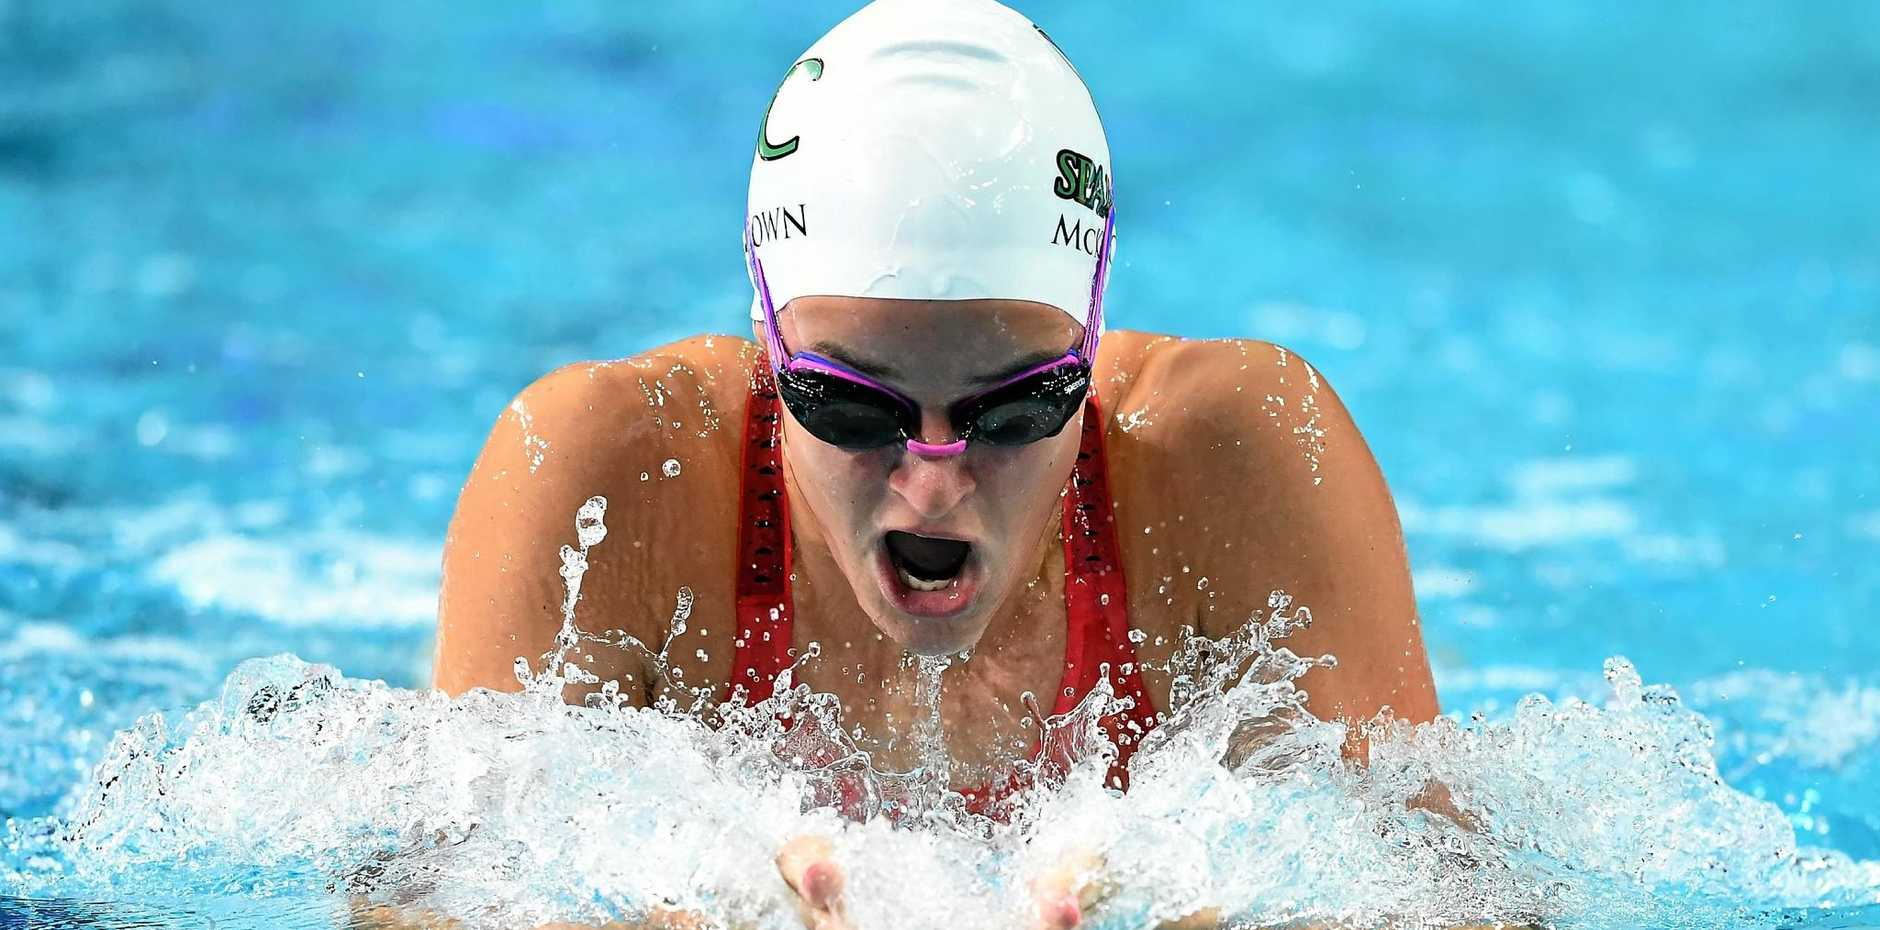 TALENTED: Kaylee McKeown of Australia competes in the Women's 200m Individual Medley during the 2017 Australian Swimming Championships at the Sleeman Sports Complex in April in Brisbane.